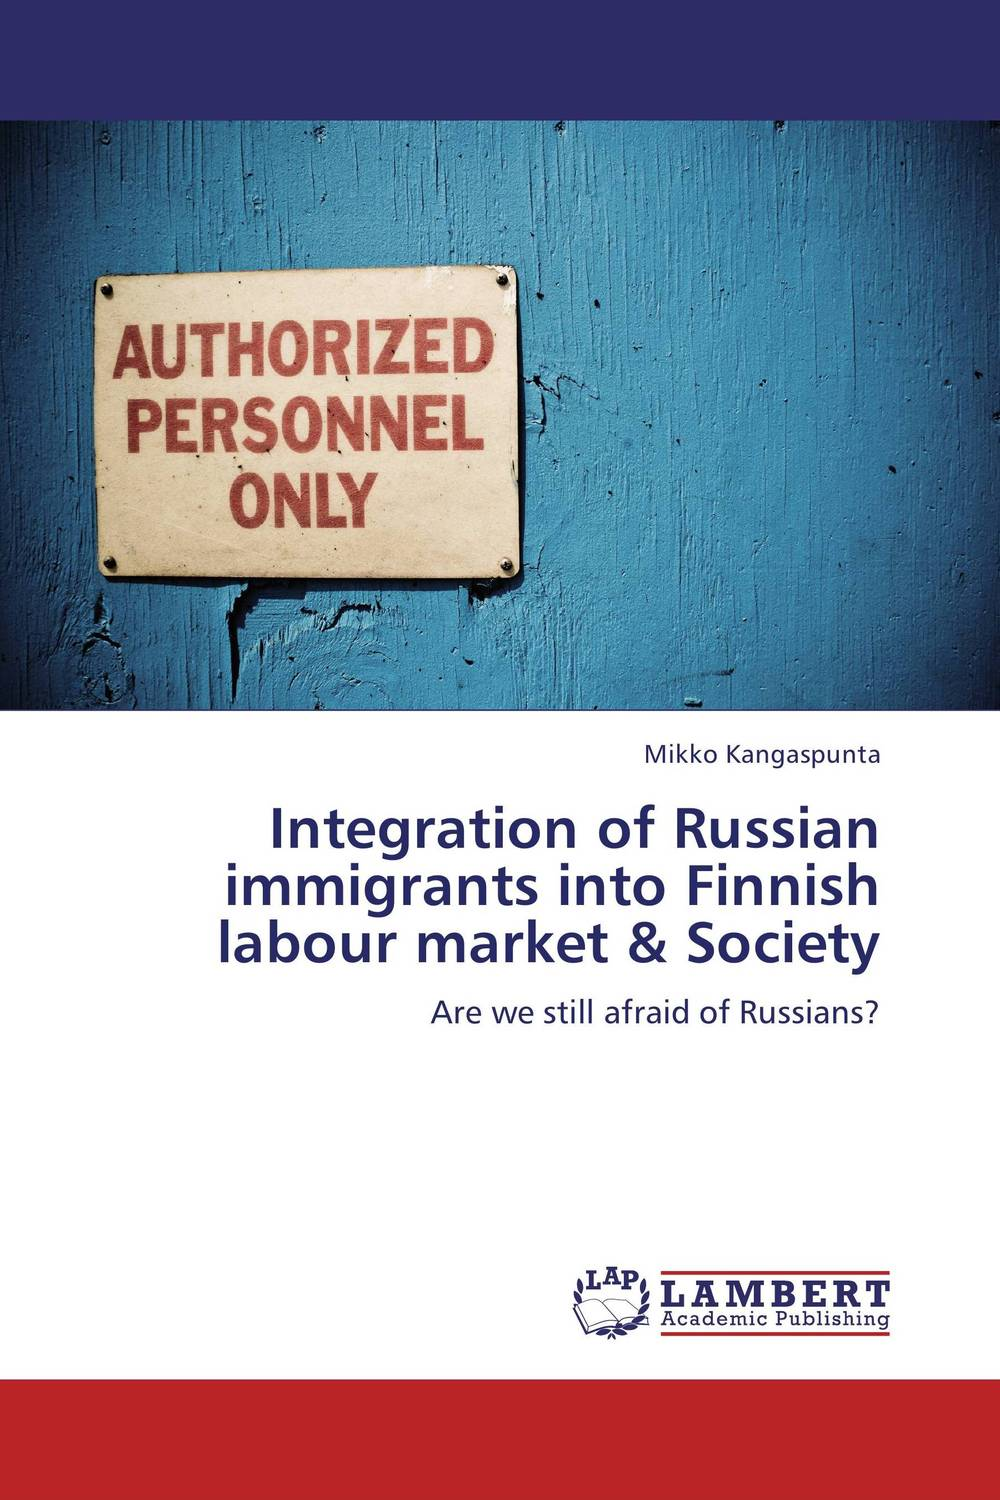 Integration of Russian immigrants into Finnish labour market & Society durkheim the division of labour in society